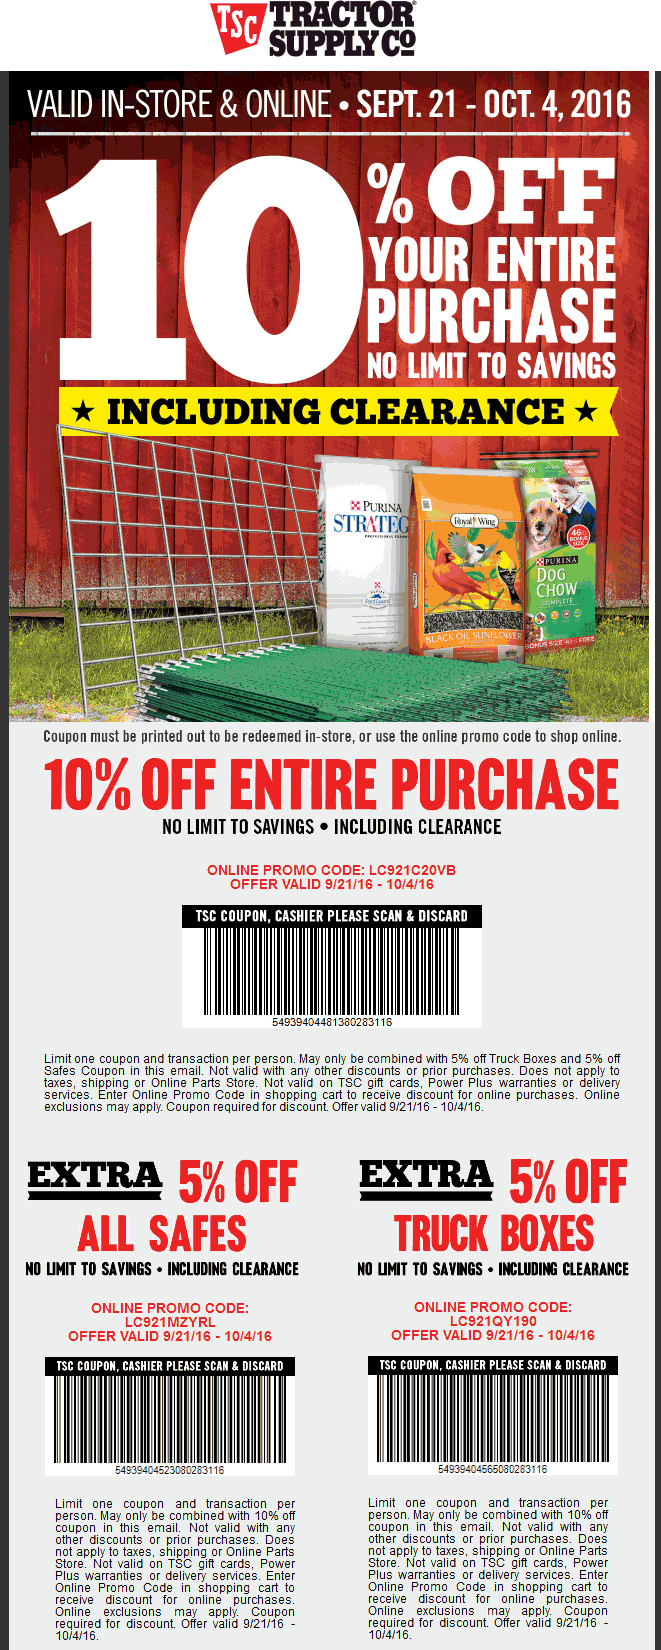 Tractor Supply Co Coupon April 2017 10% off at Tractor Supply Co, or online via promo code LC921C20VB